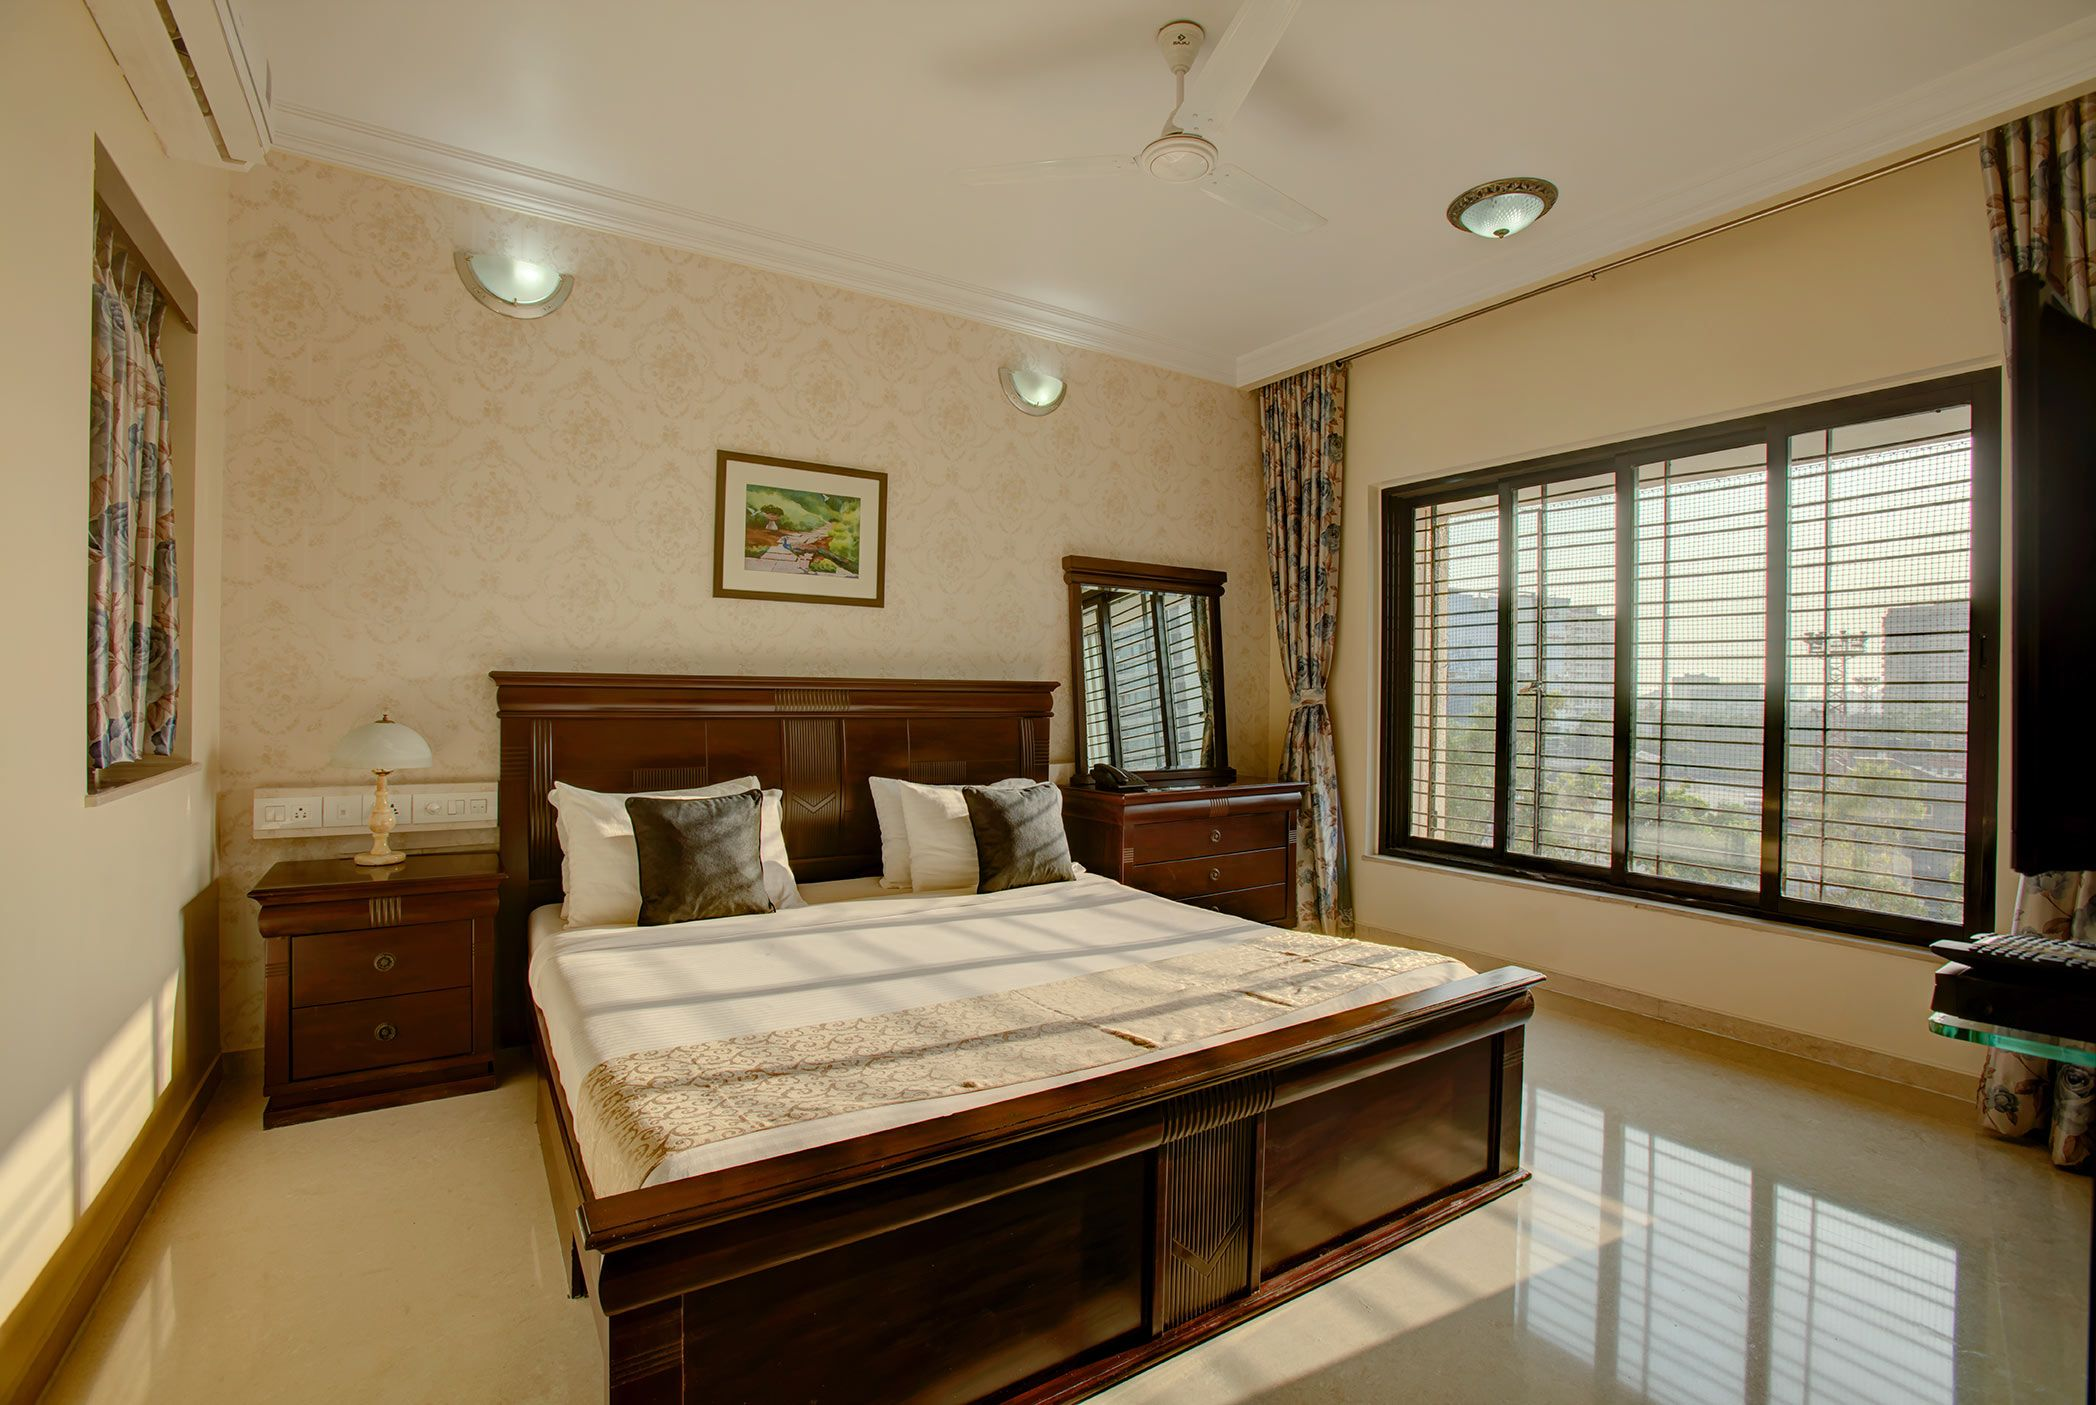 461dfae30b8375cae887611120579838 - Gardens Apartments Fully Furnished And Serviced Apartments